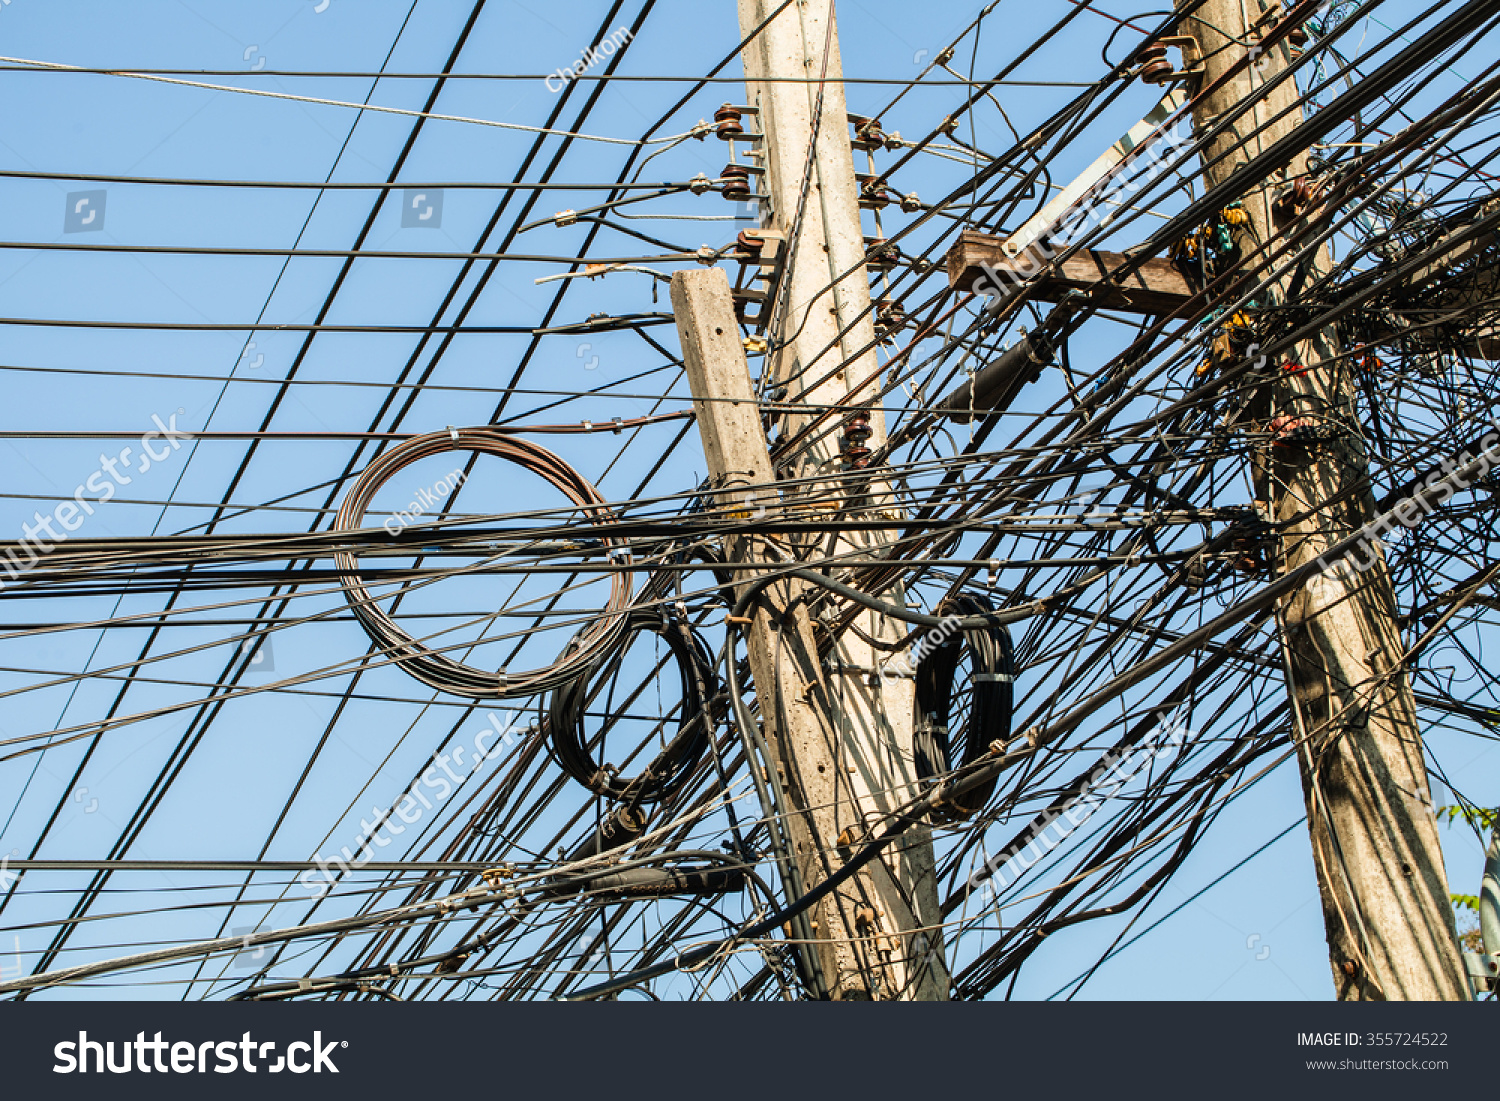 Tangled Electrical Wire On Electricity Post Stock Photo 355724522 ...